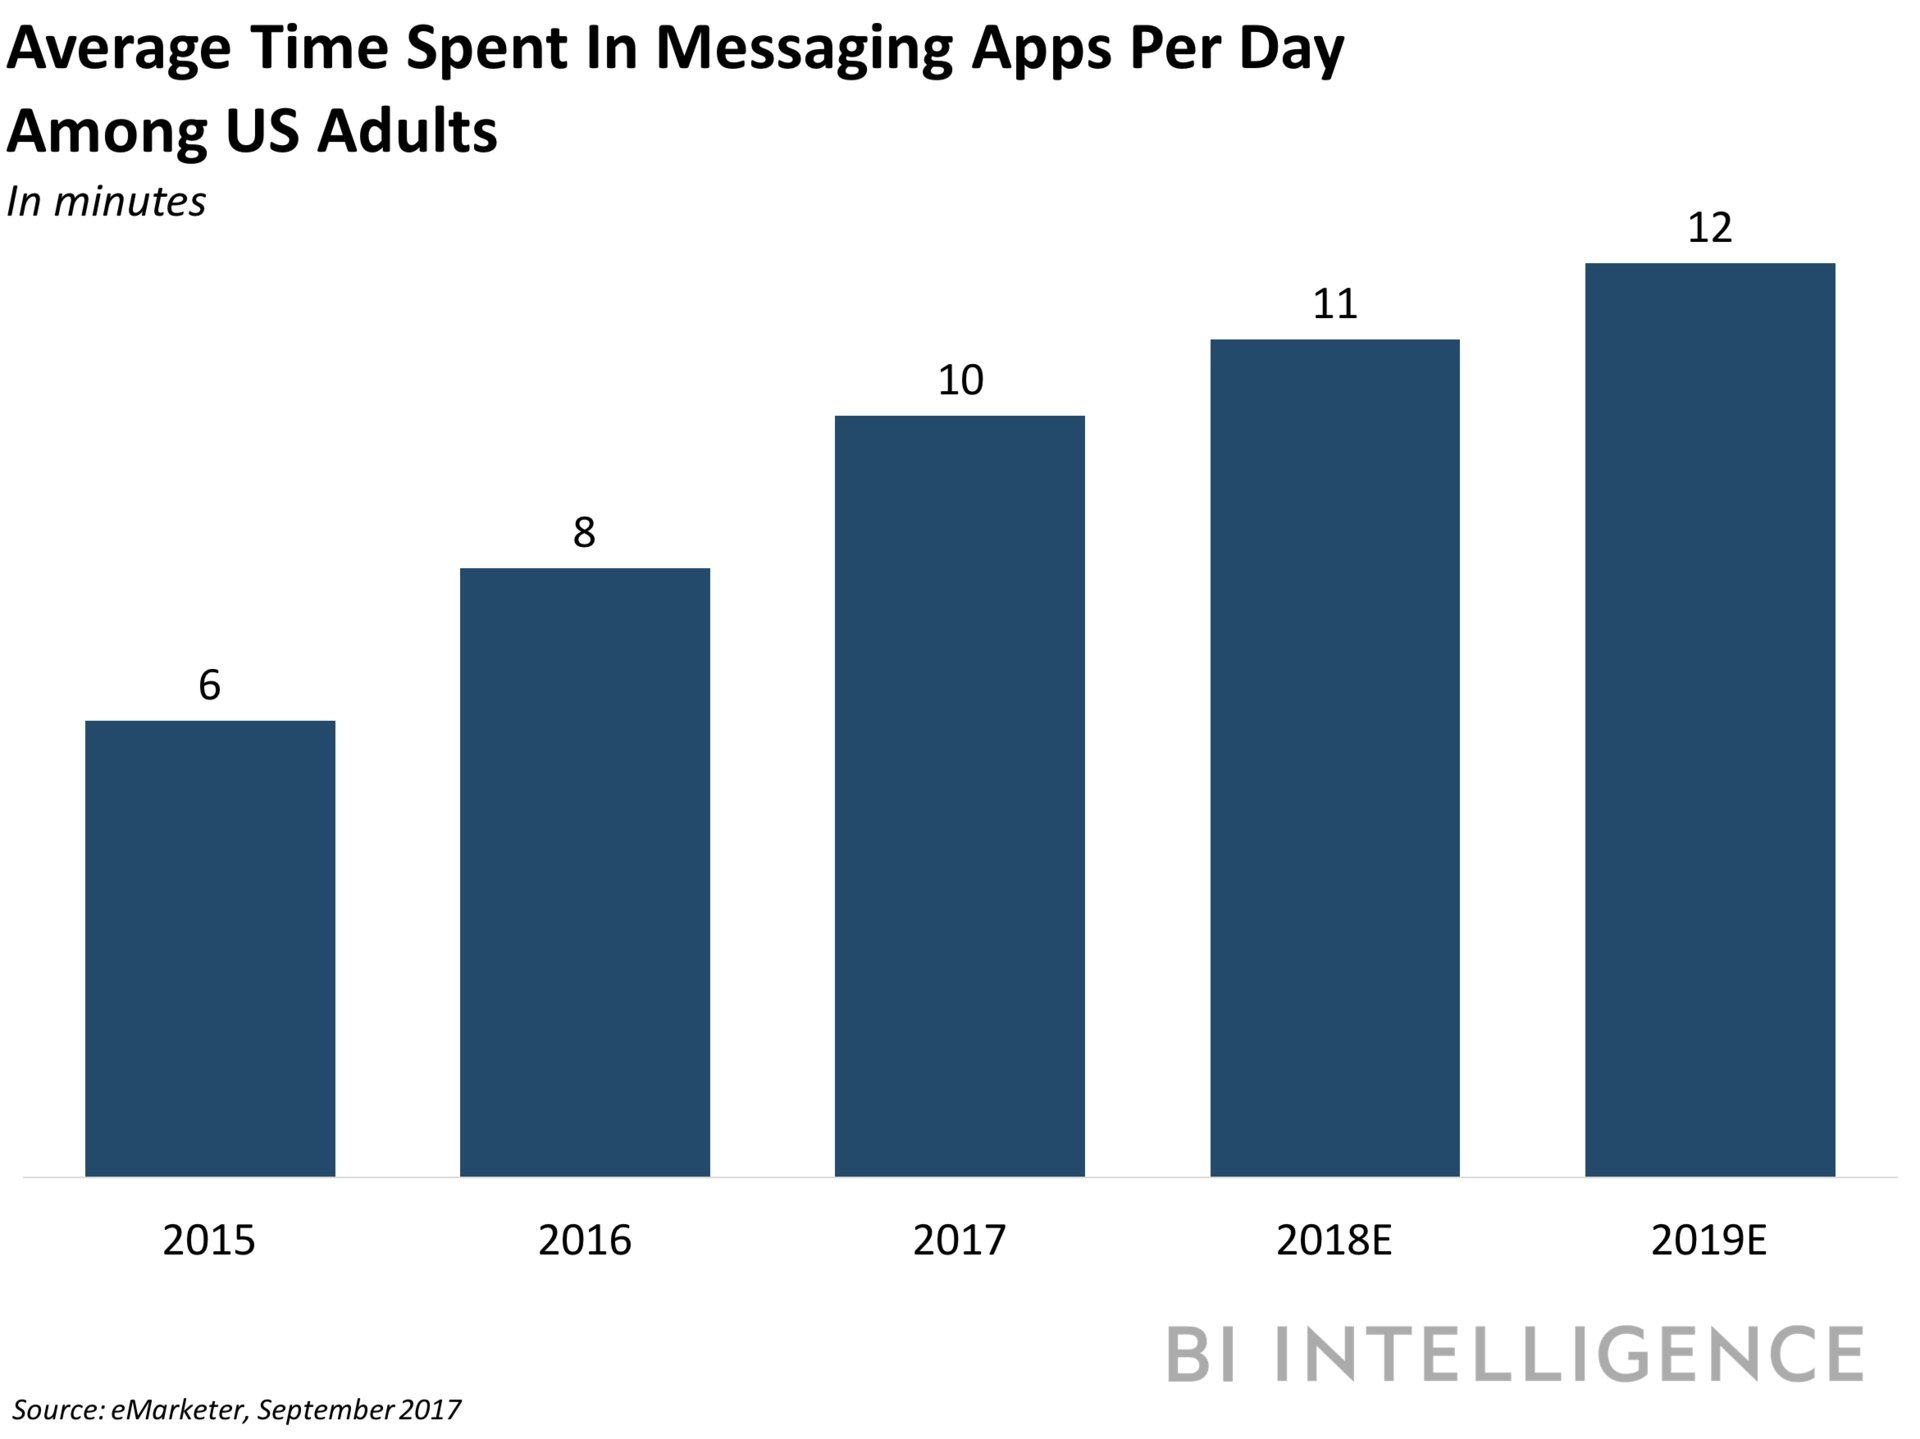 Messaging App Time Spent